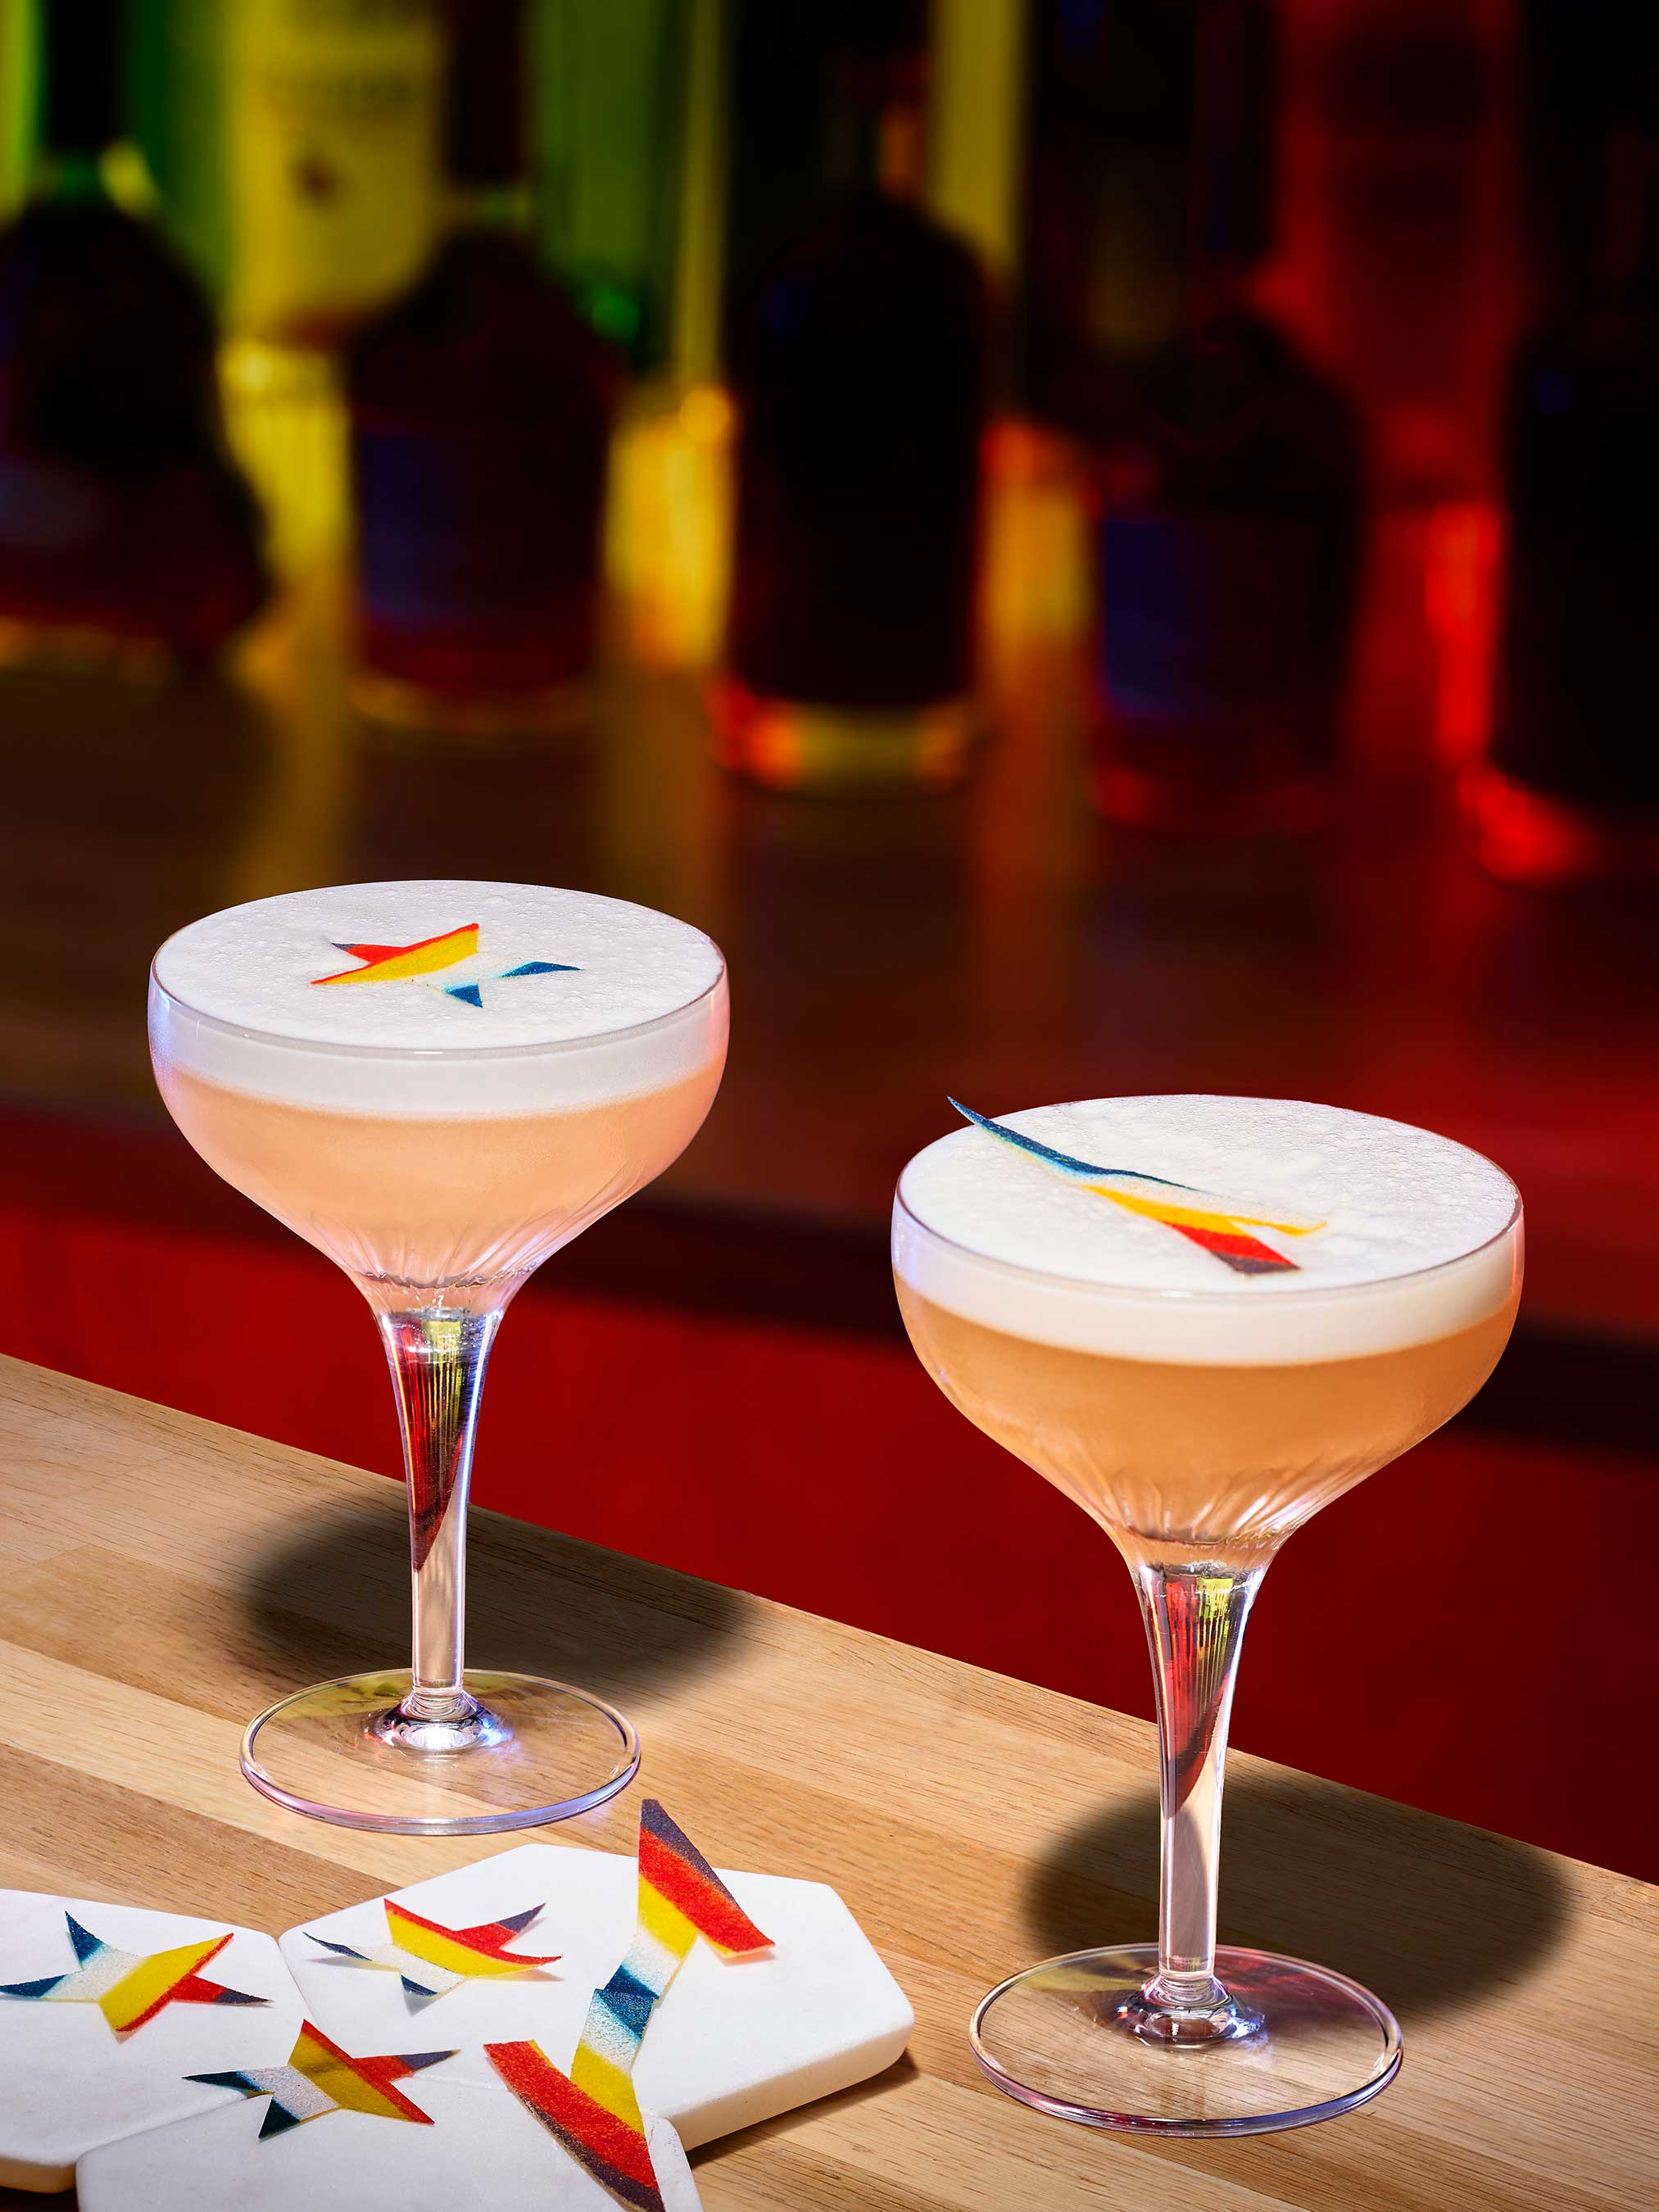 The Ginger Sour and Apricot Sour are both crafted with Hennessy V.S